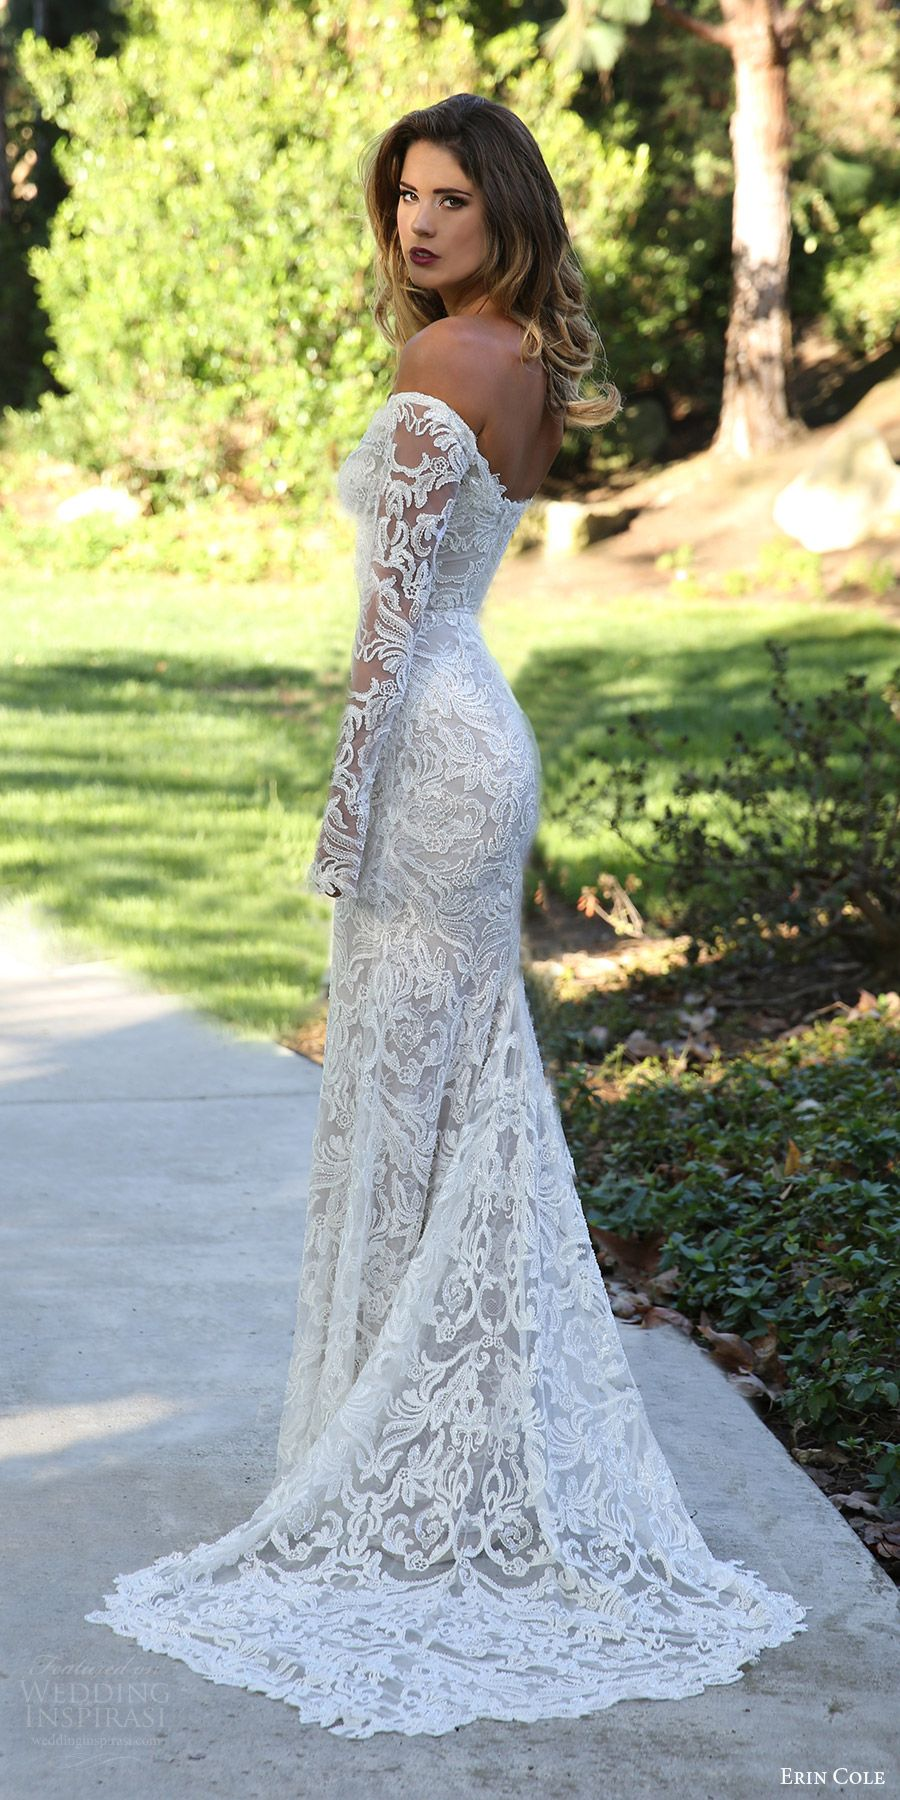 Nektaria wedding dress  Erin Cole Fall  Wedding Dresses  One day  Pinterest  Vestidos